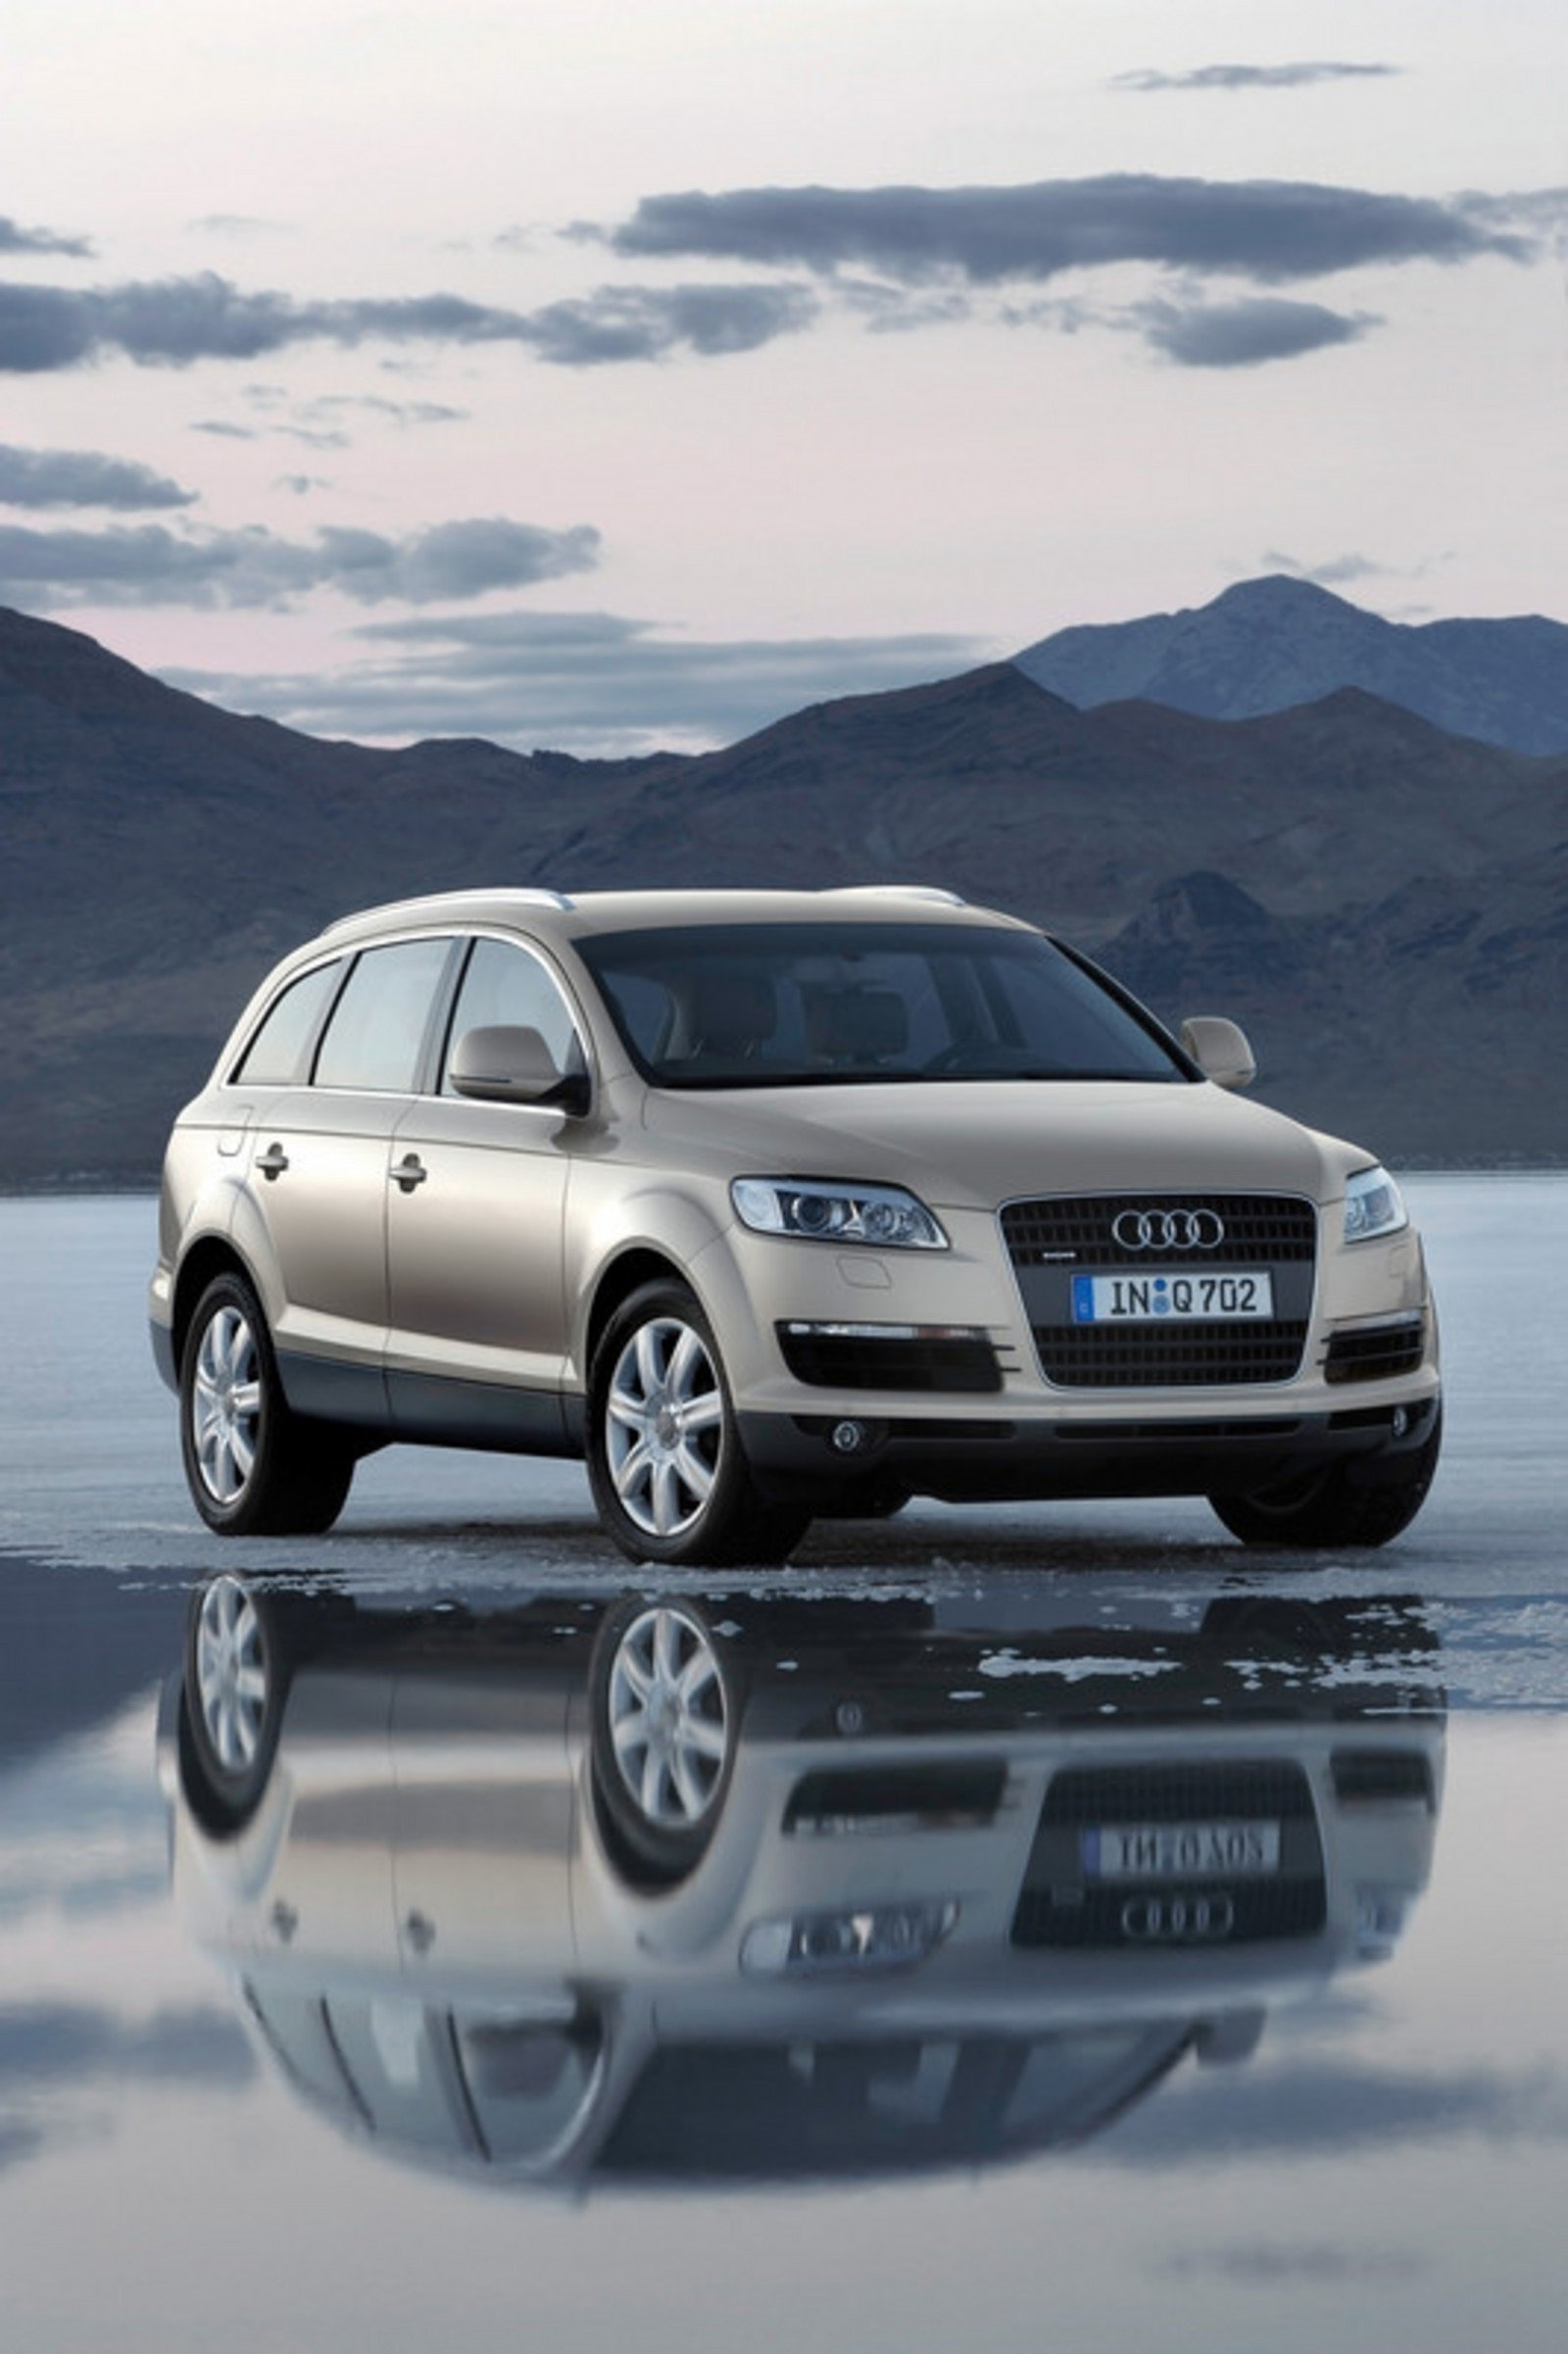 2007 audi q7 review top speed. Black Bedroom Furniture Sets. Home Design Ideas